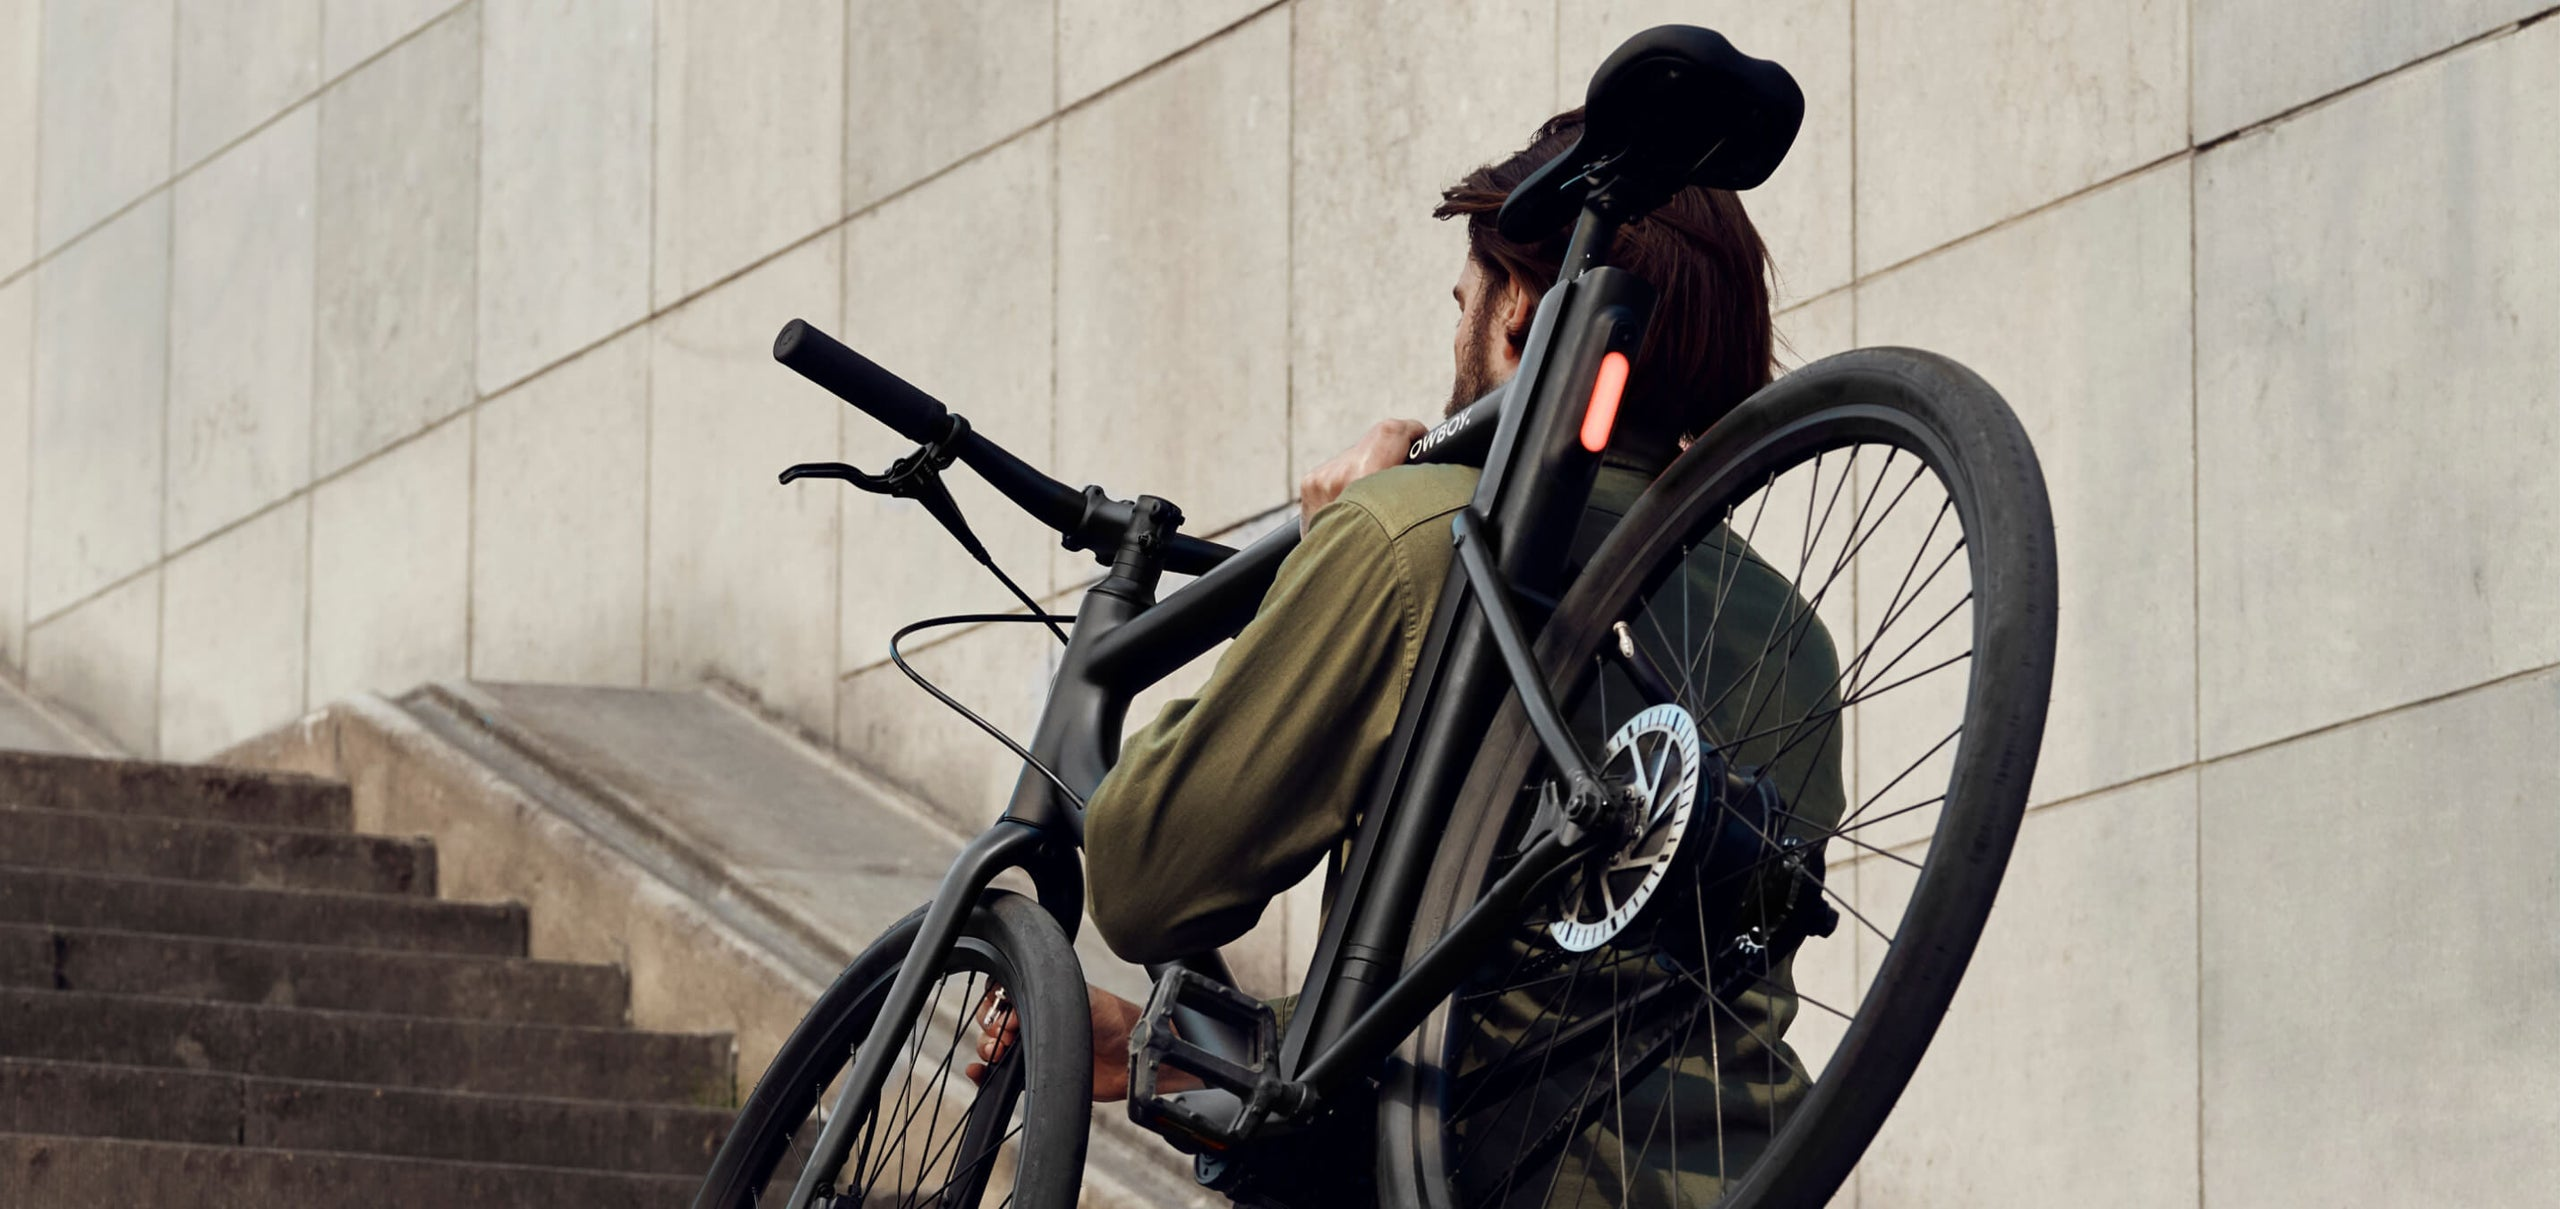 Cowboy e-bike - Lightweight  e-bike